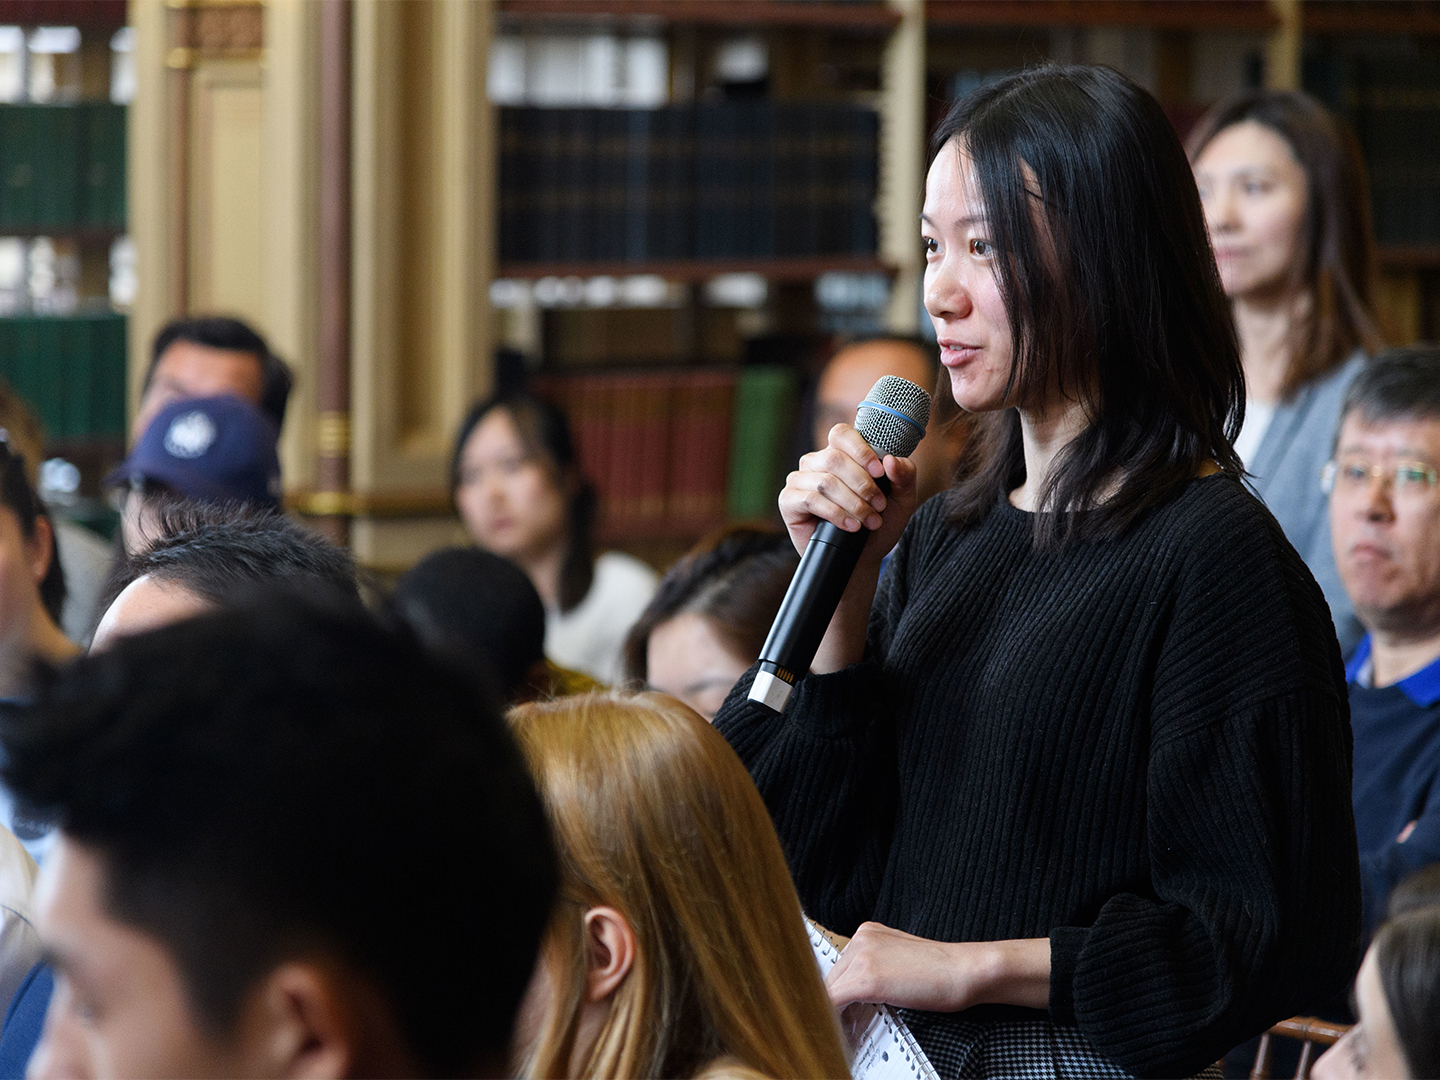 Georgetown student, Ruolin Zhao, poses a question on educational reform in China.